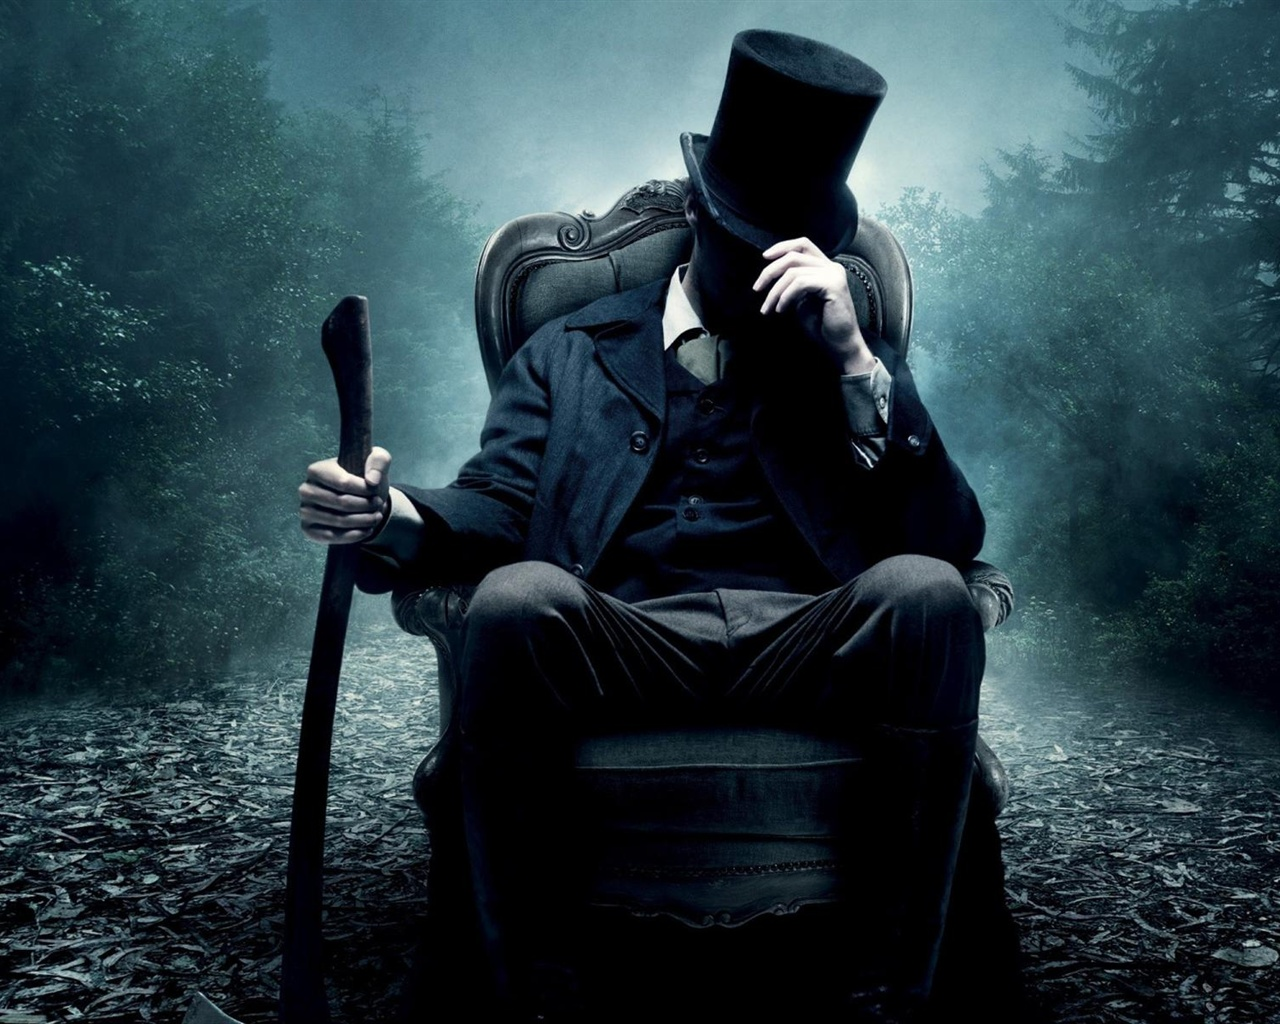 wallpaper abraham lincoln: vampire hunter 1920x1200 hd picture, image